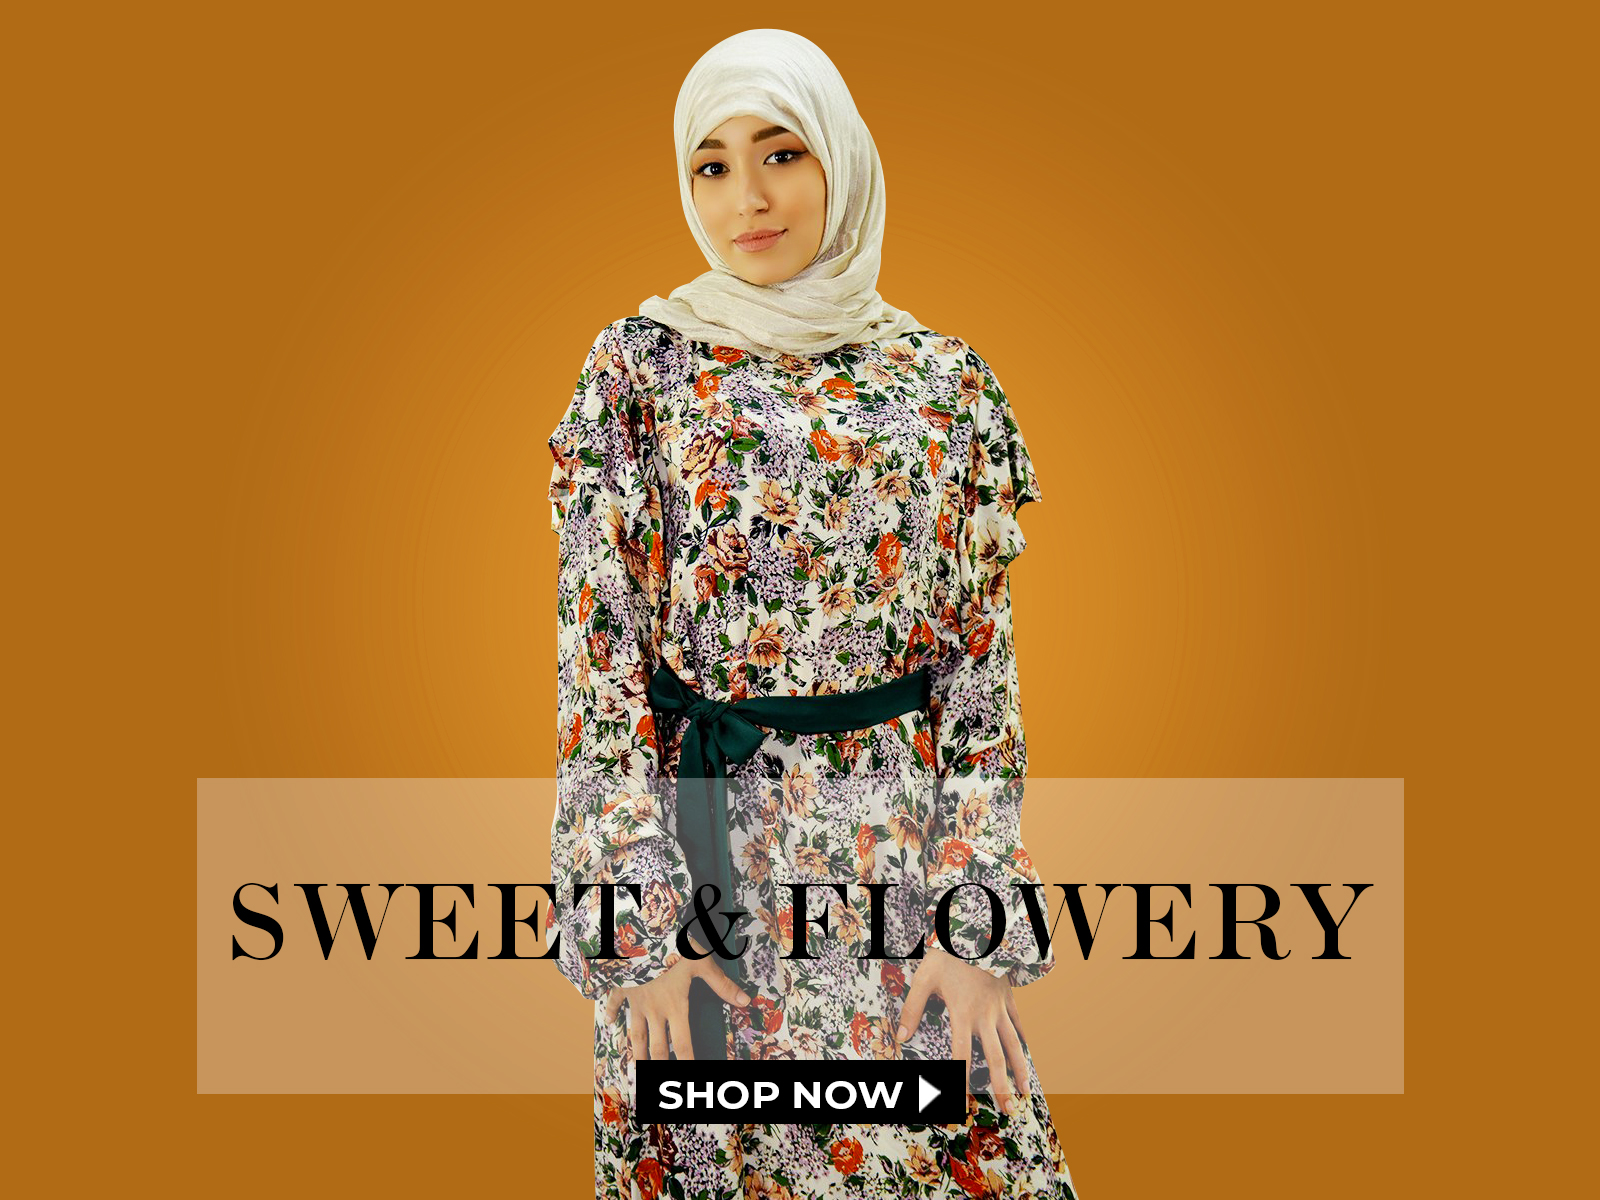 ef638cca42 Al Moultazimoun Store | Islamic clothing and muslim products ...